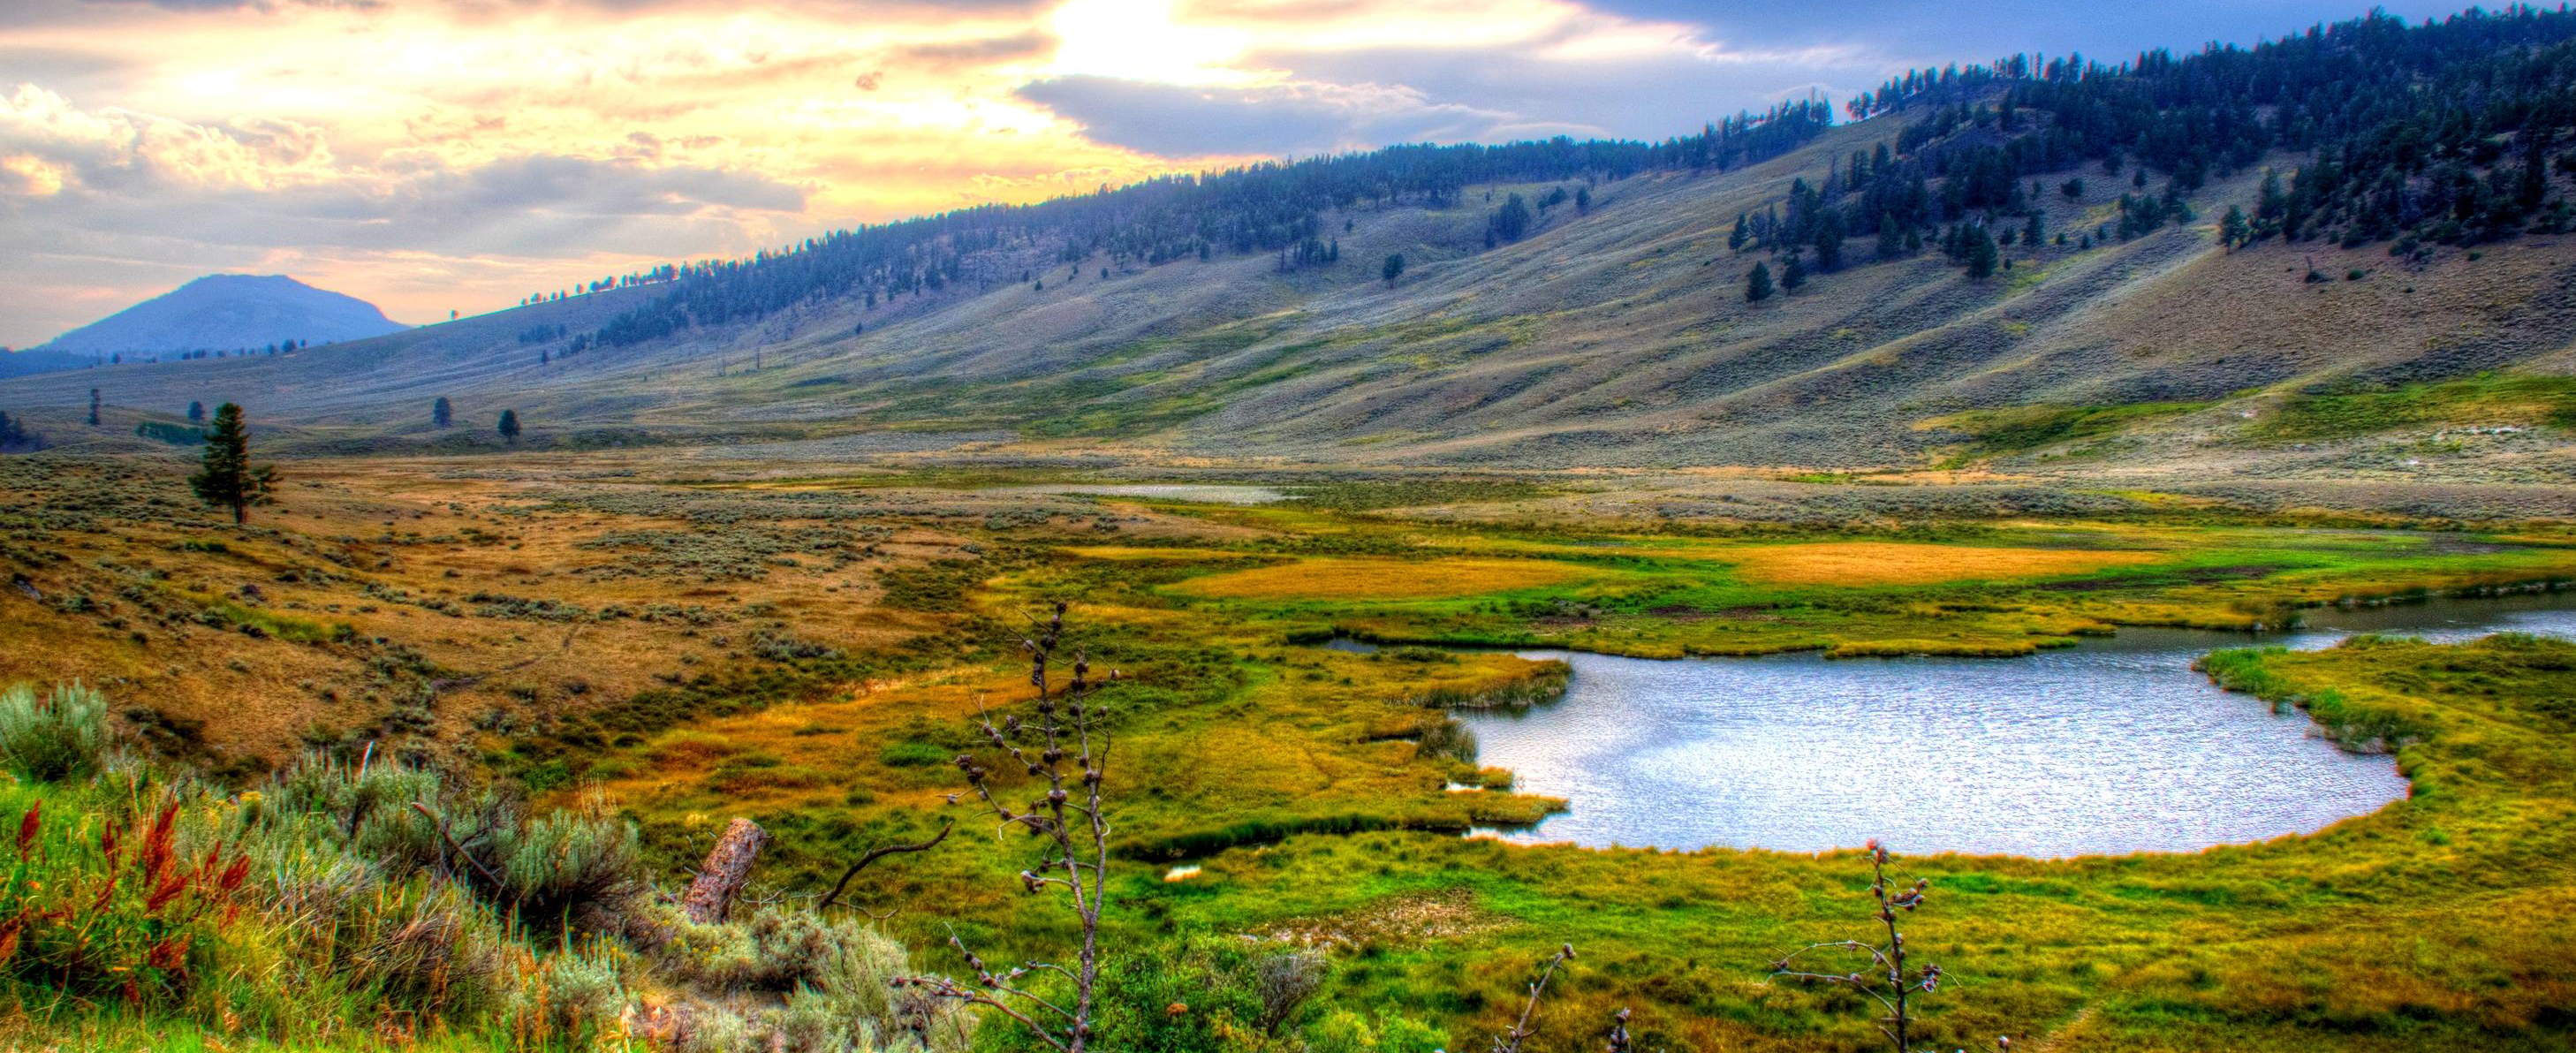 yellowstone-national-park-usa